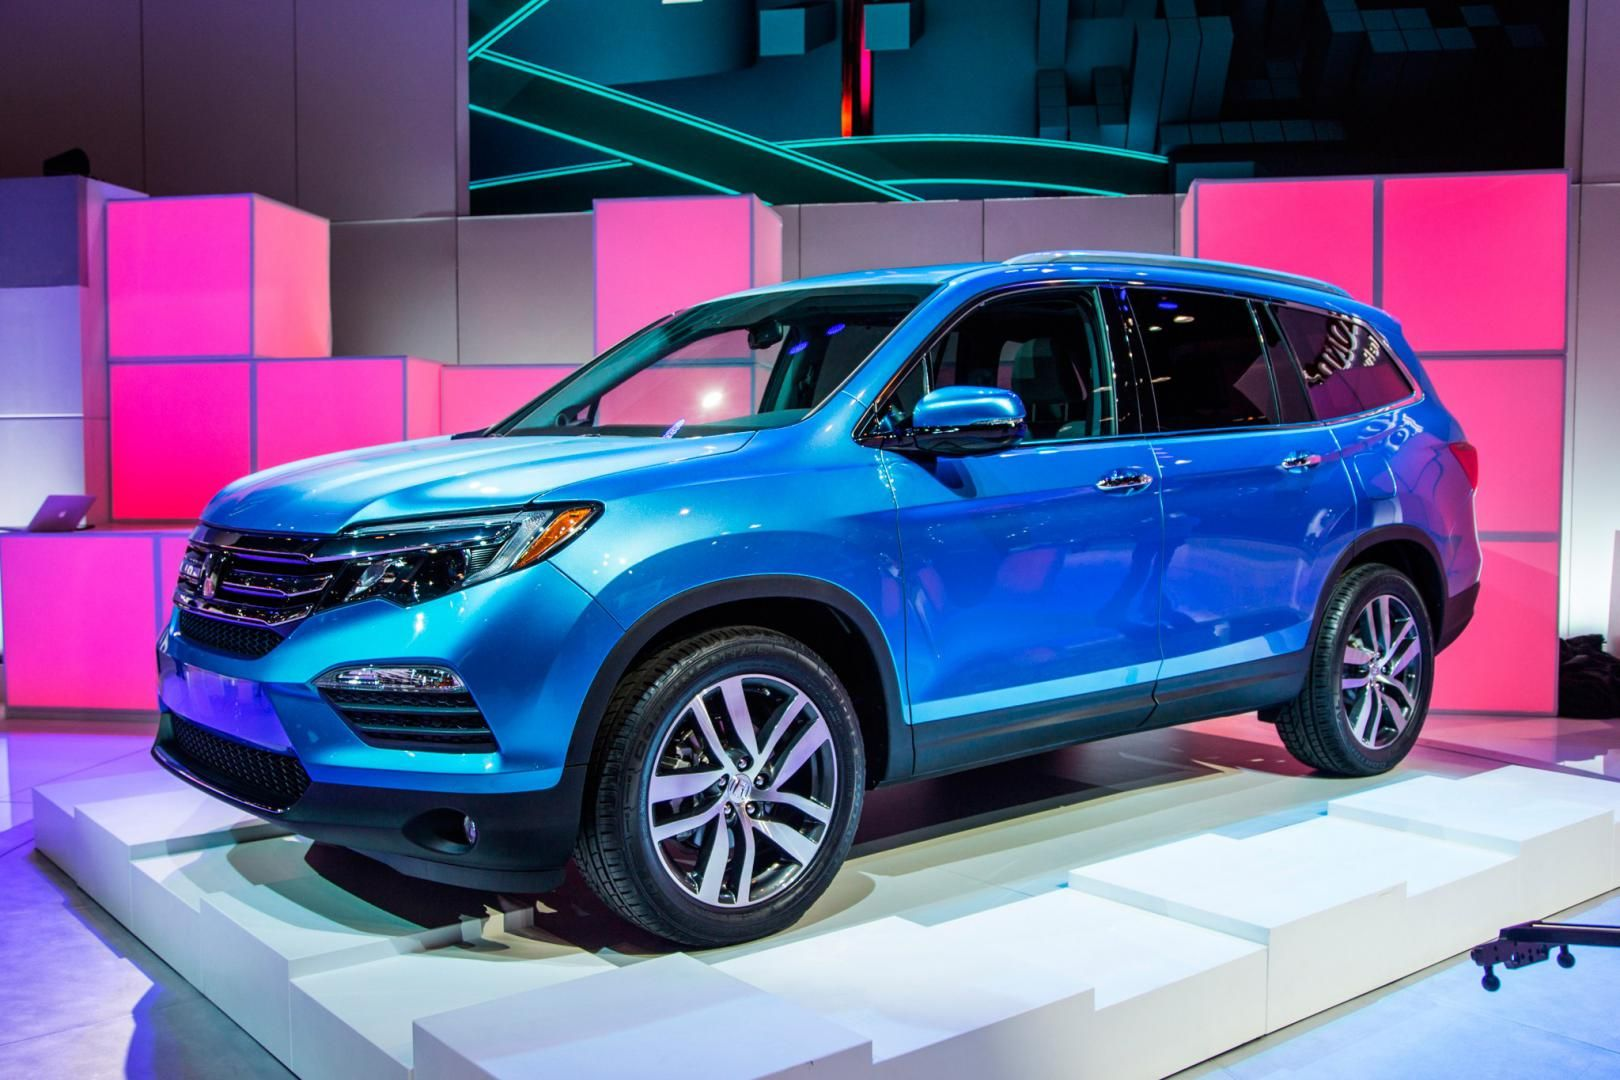 2016 honda pilot is the featured model the 2016 honda pilot exterior image is added in car pictures category by the author on oct